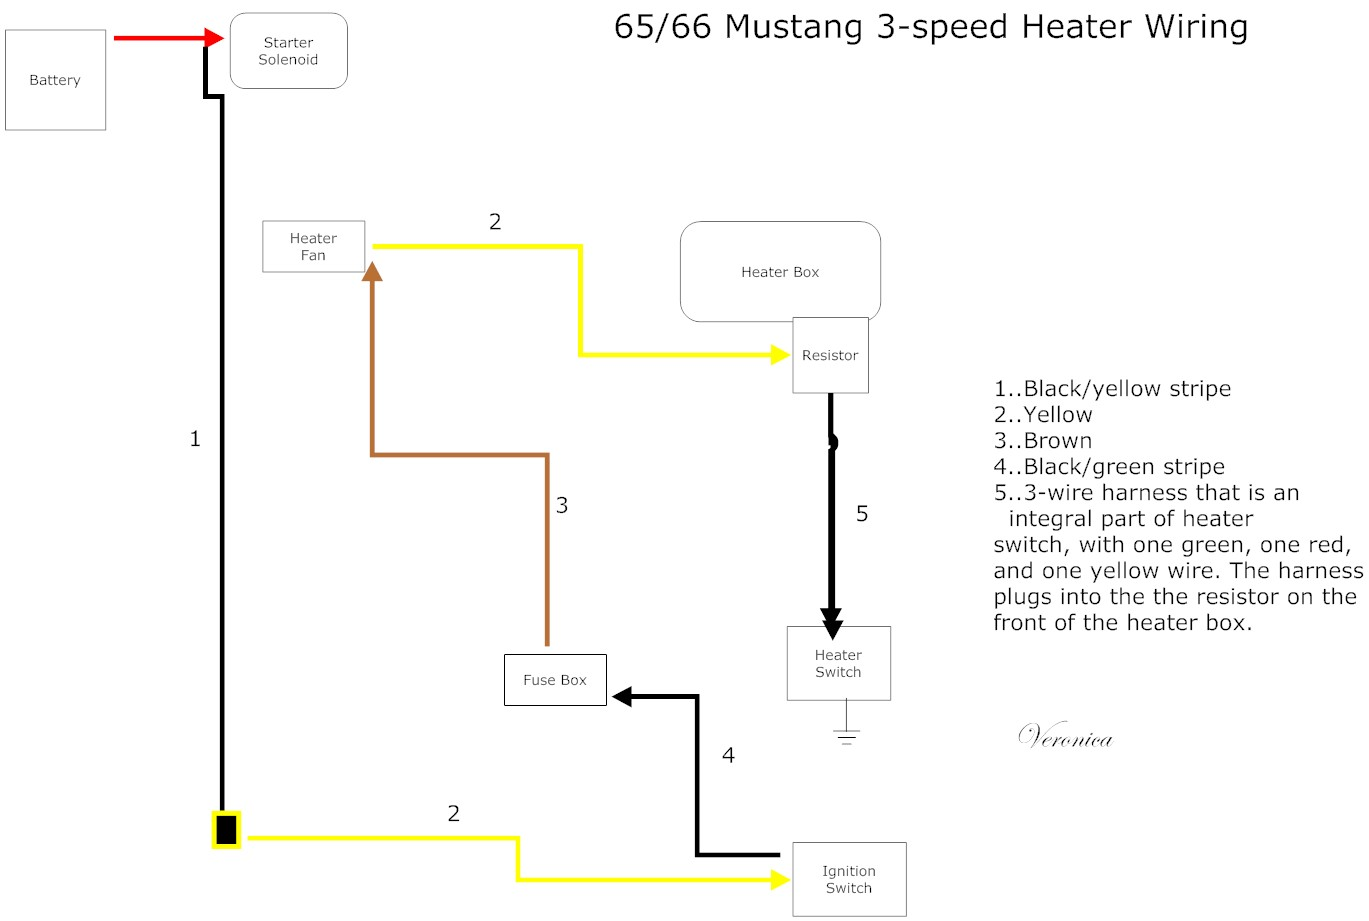 the care and feeding of ponies mustang heater blower motor 1965 here is how the heater blower motor works on the 65 66 mustangs if you click on the diagrams they will pop out so that you can see the entire diagram